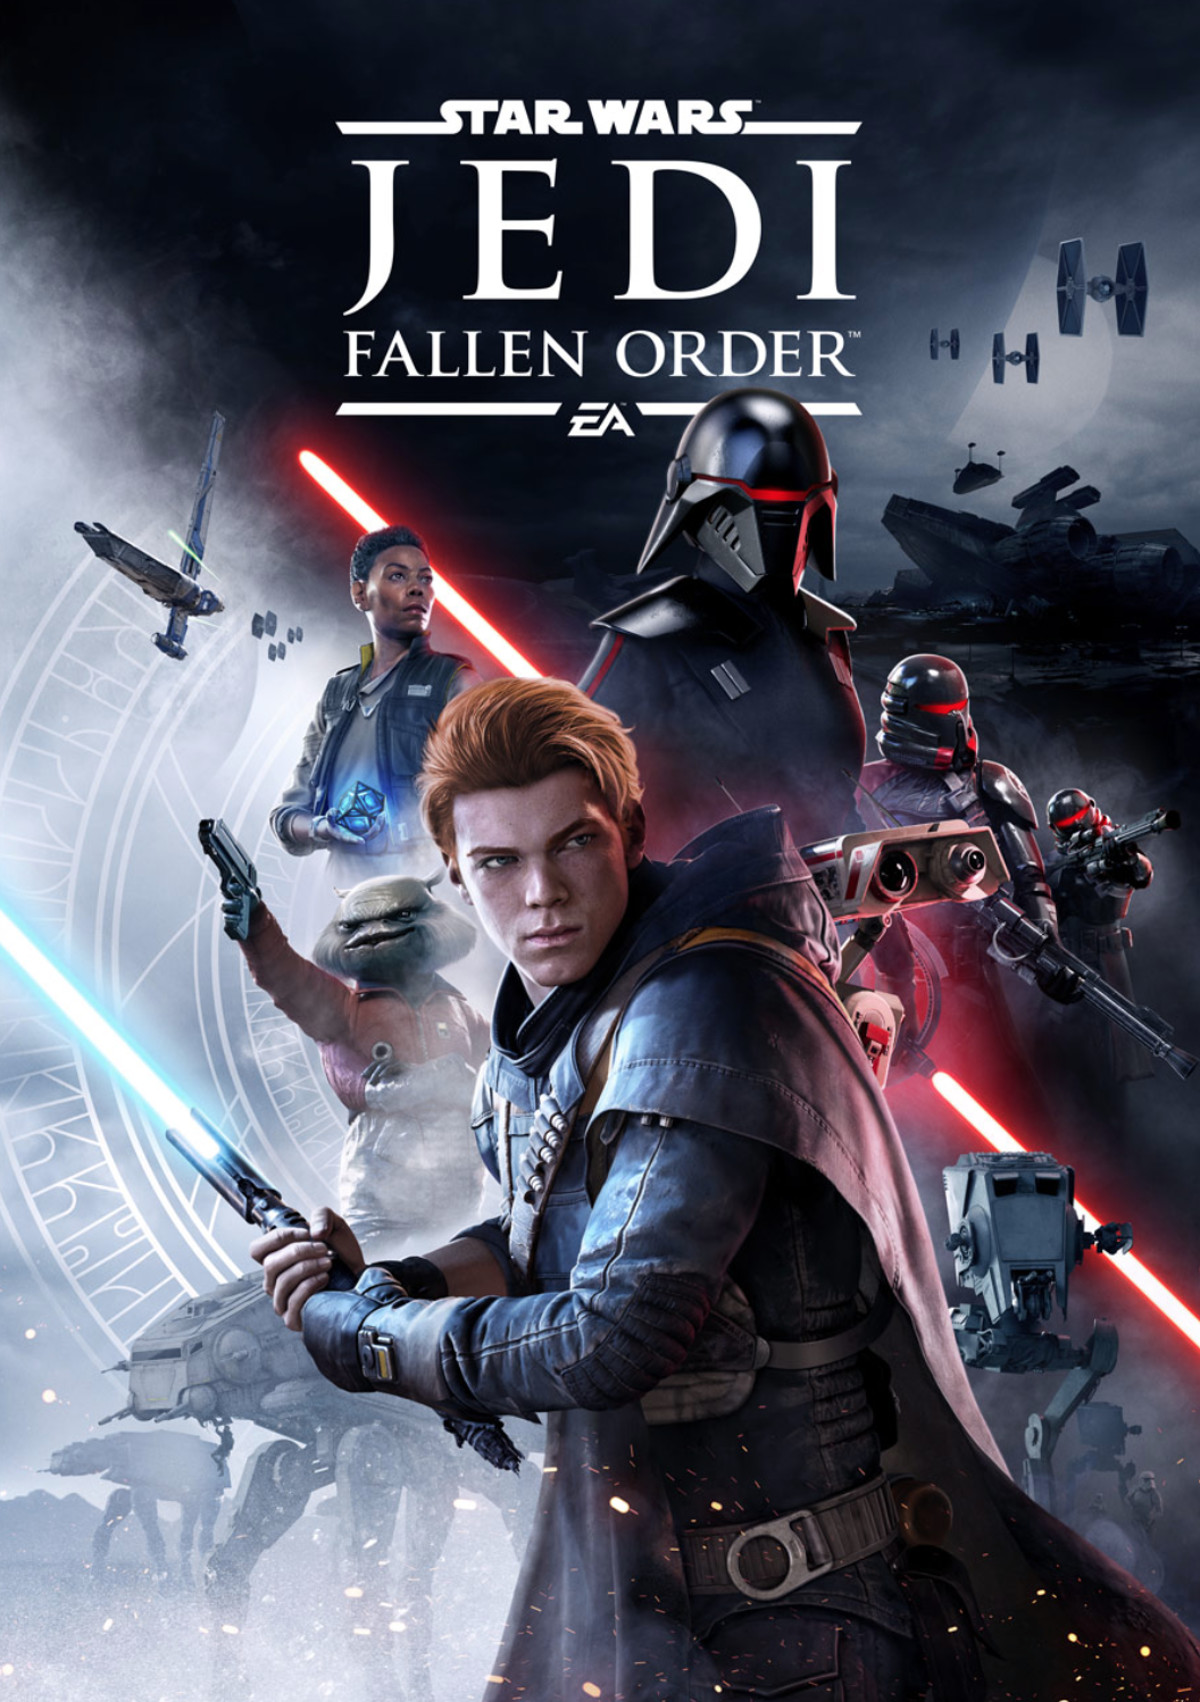 Star Wars Jedi: Fallen Order': Here's everything we know about the